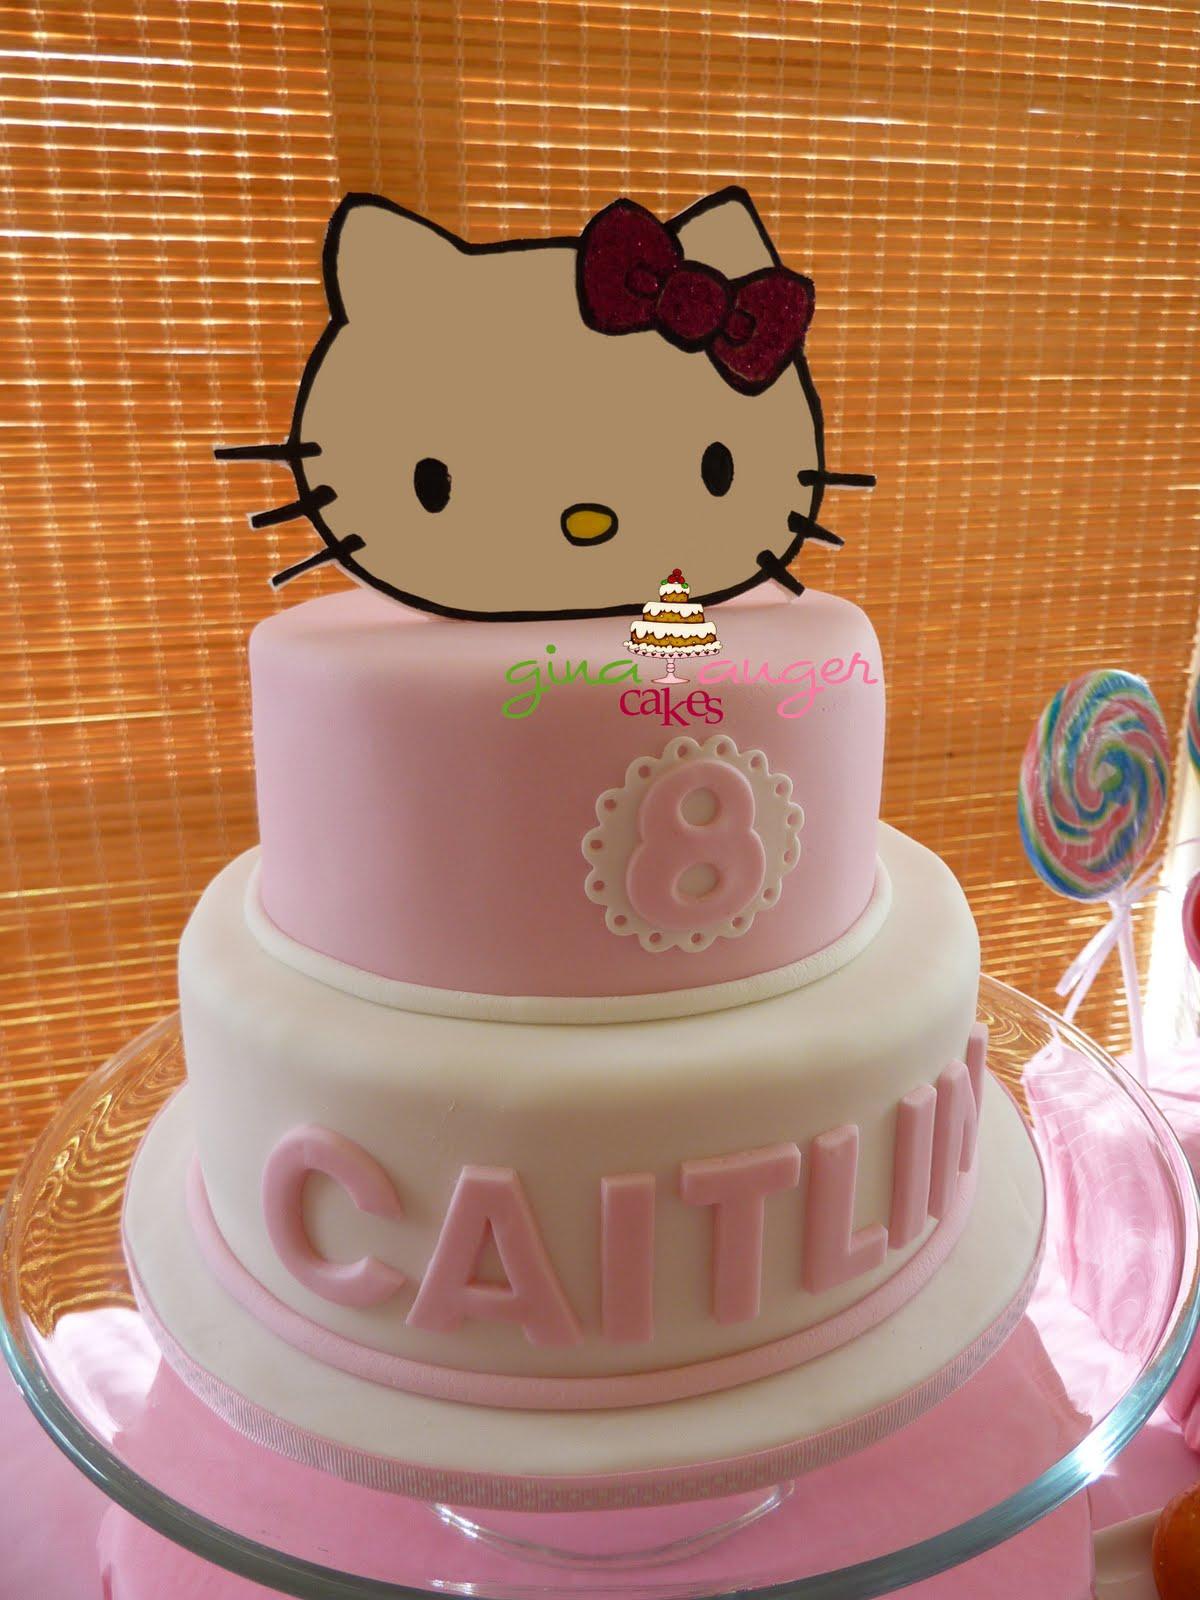 Top That!: Hello Kitty! {Caitlin's 8th Birthday cake}